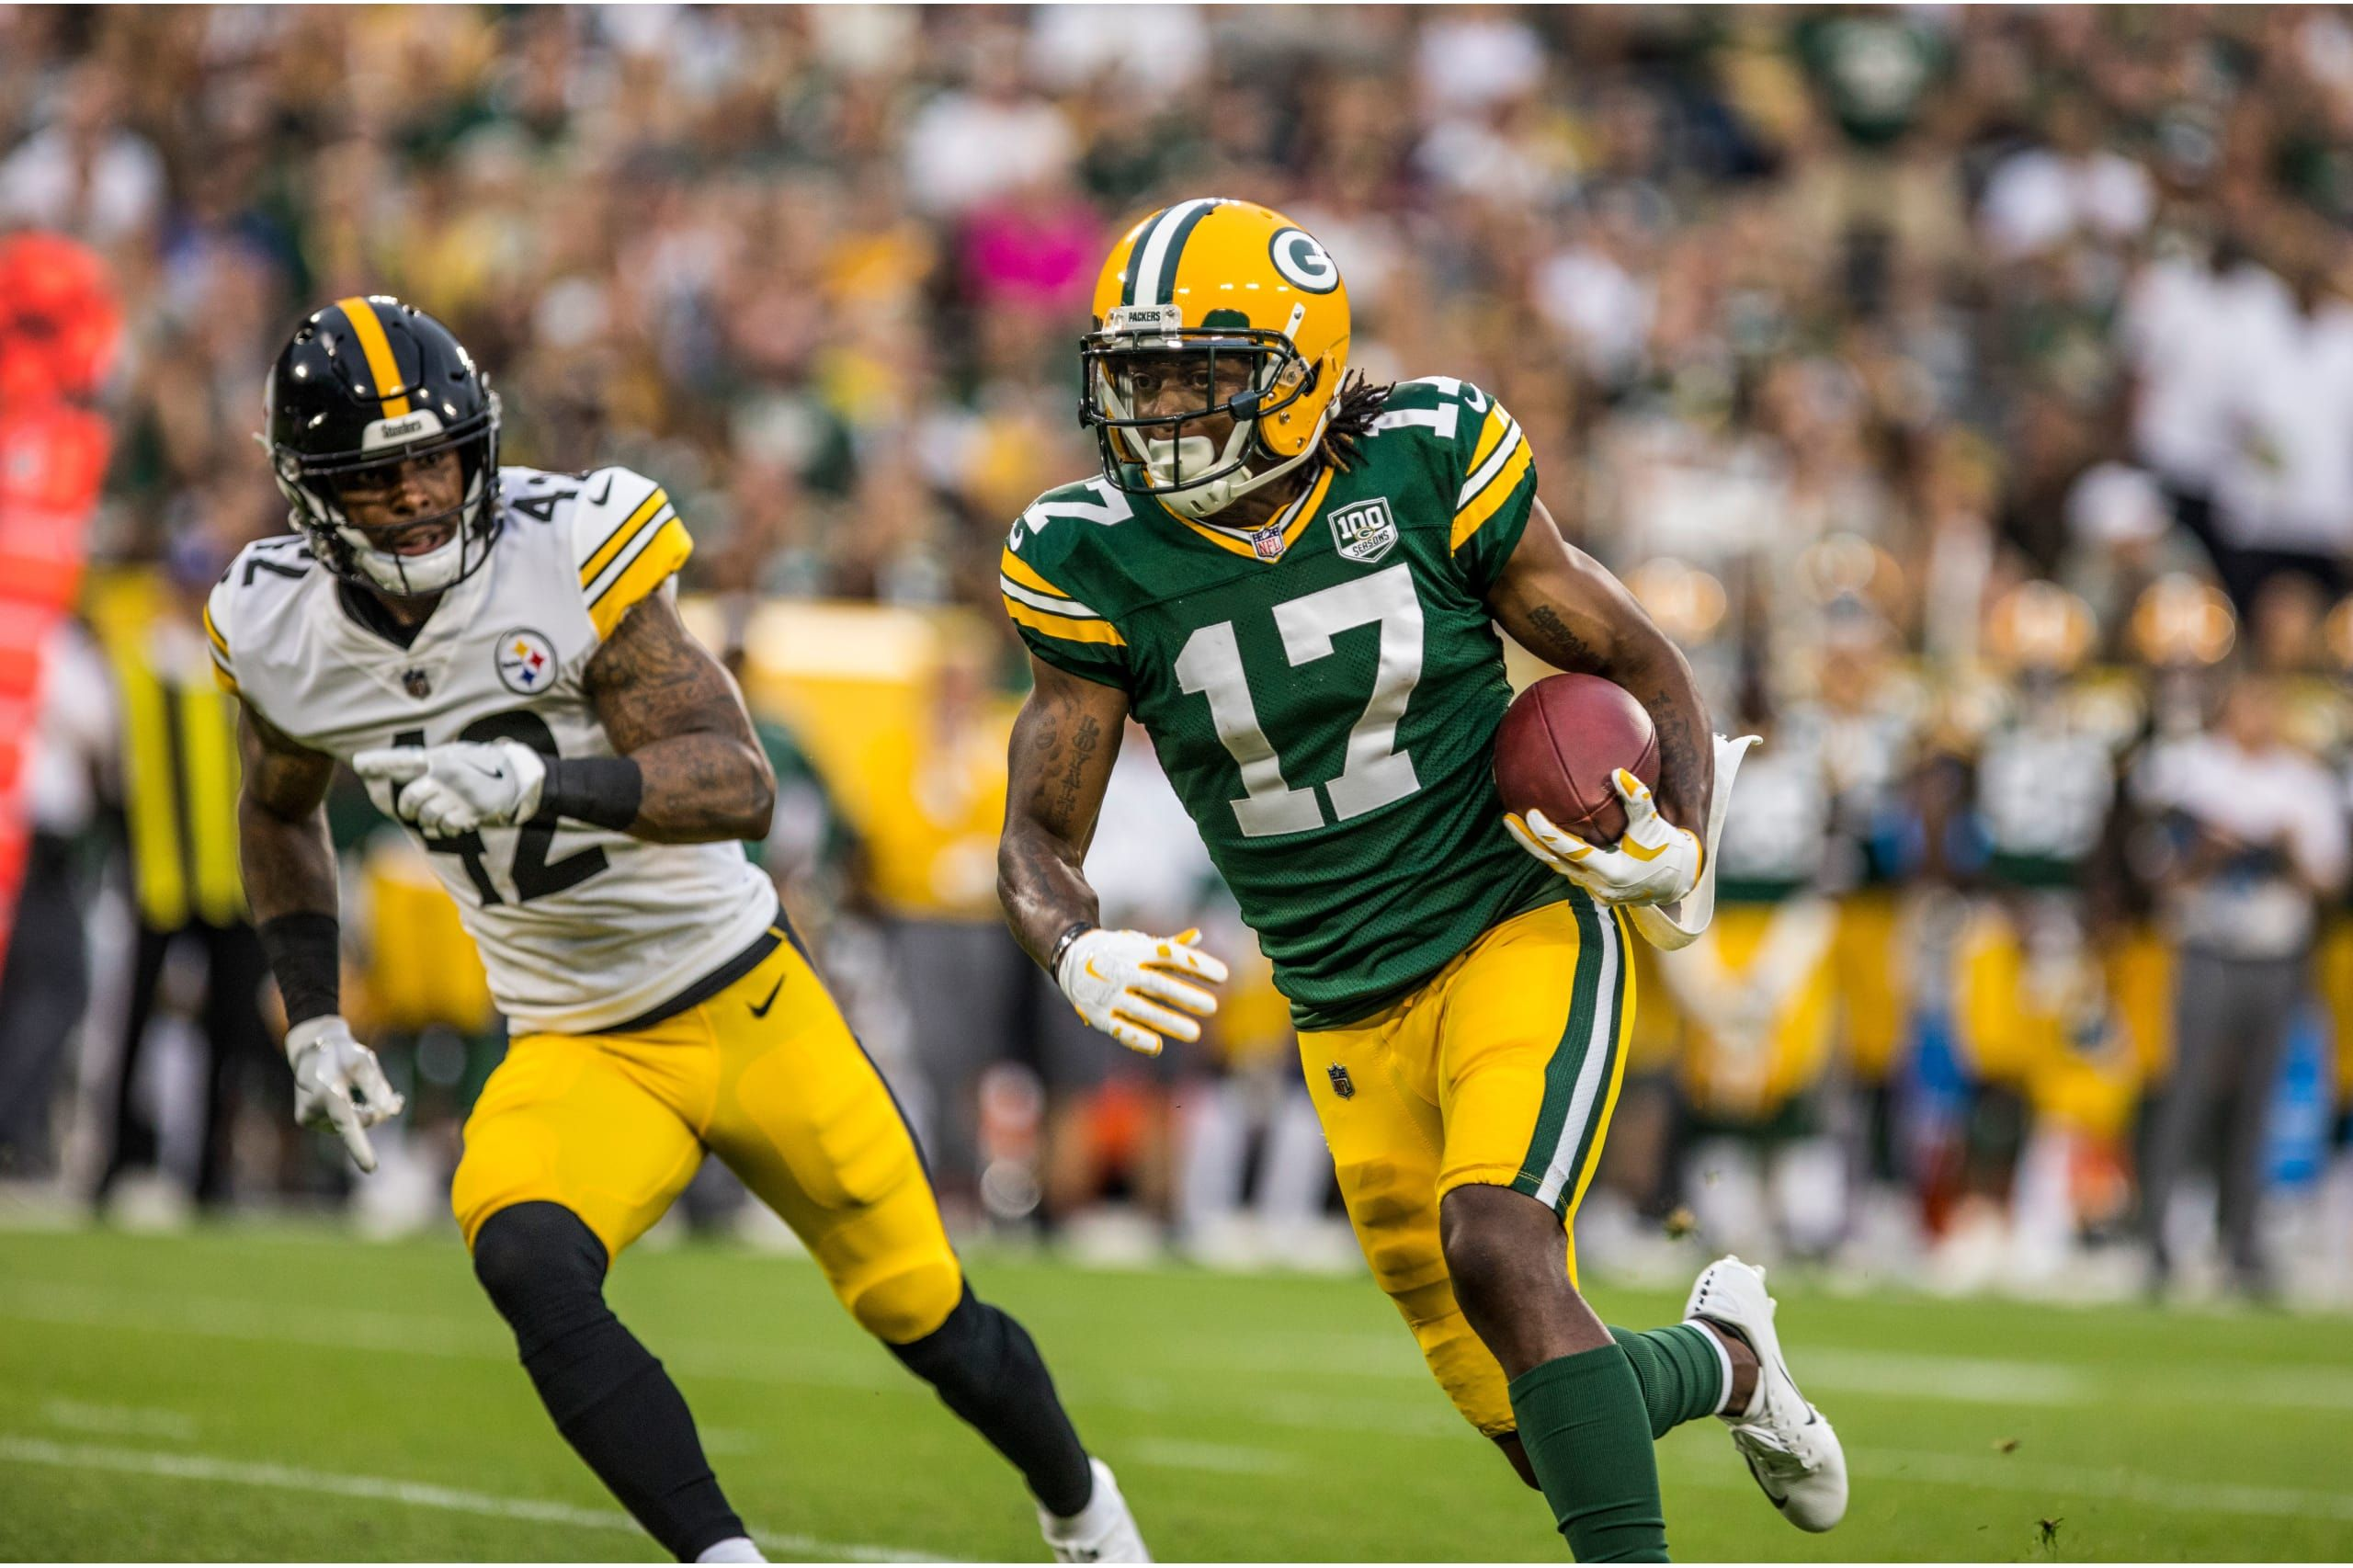 17 Wr Davante Adams In 2020 Green Bay Packers Packers Football Helmets